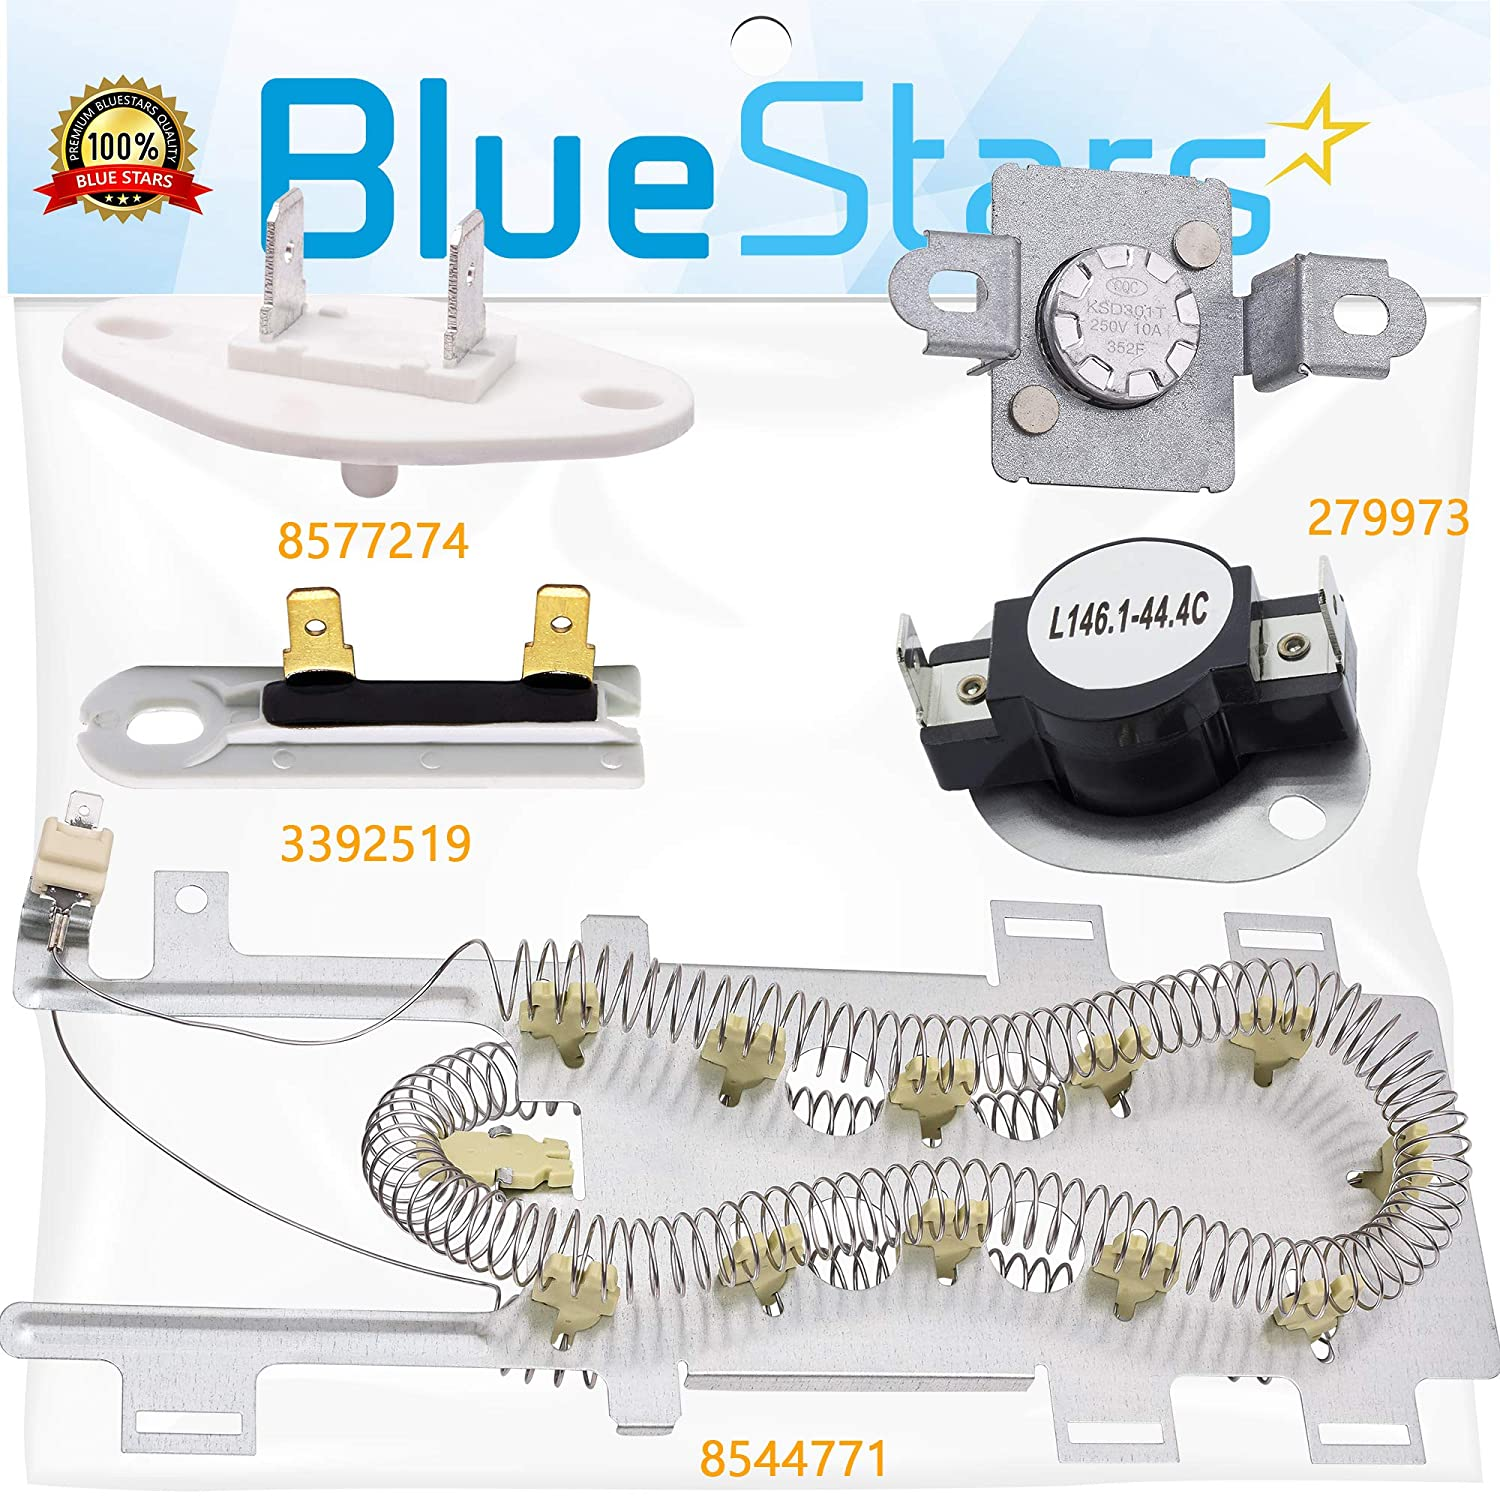 NEW 8544771 279973 3392519 8577274 Dryer Heating Element & Thermal Cut-off Kit with Thermistor and Thermal Fuse Dryer Repair Kit Replacement by Blue Stars – Exact Fit For Whirlpool Maytag Dryers